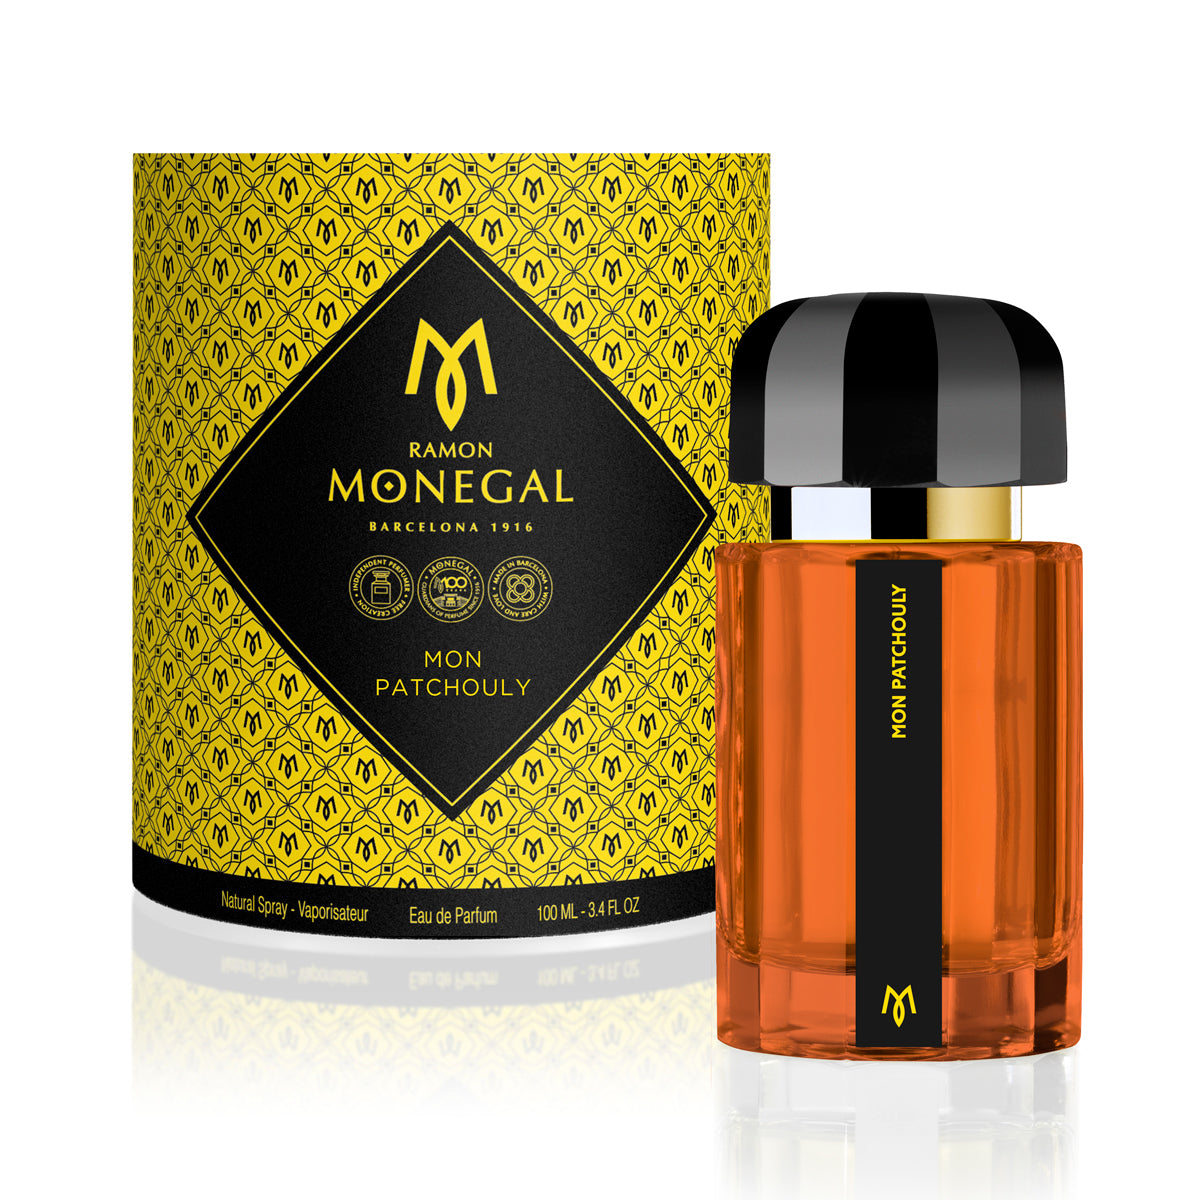 Mon Patchouly - Ramon Monegal - EDP 100ml